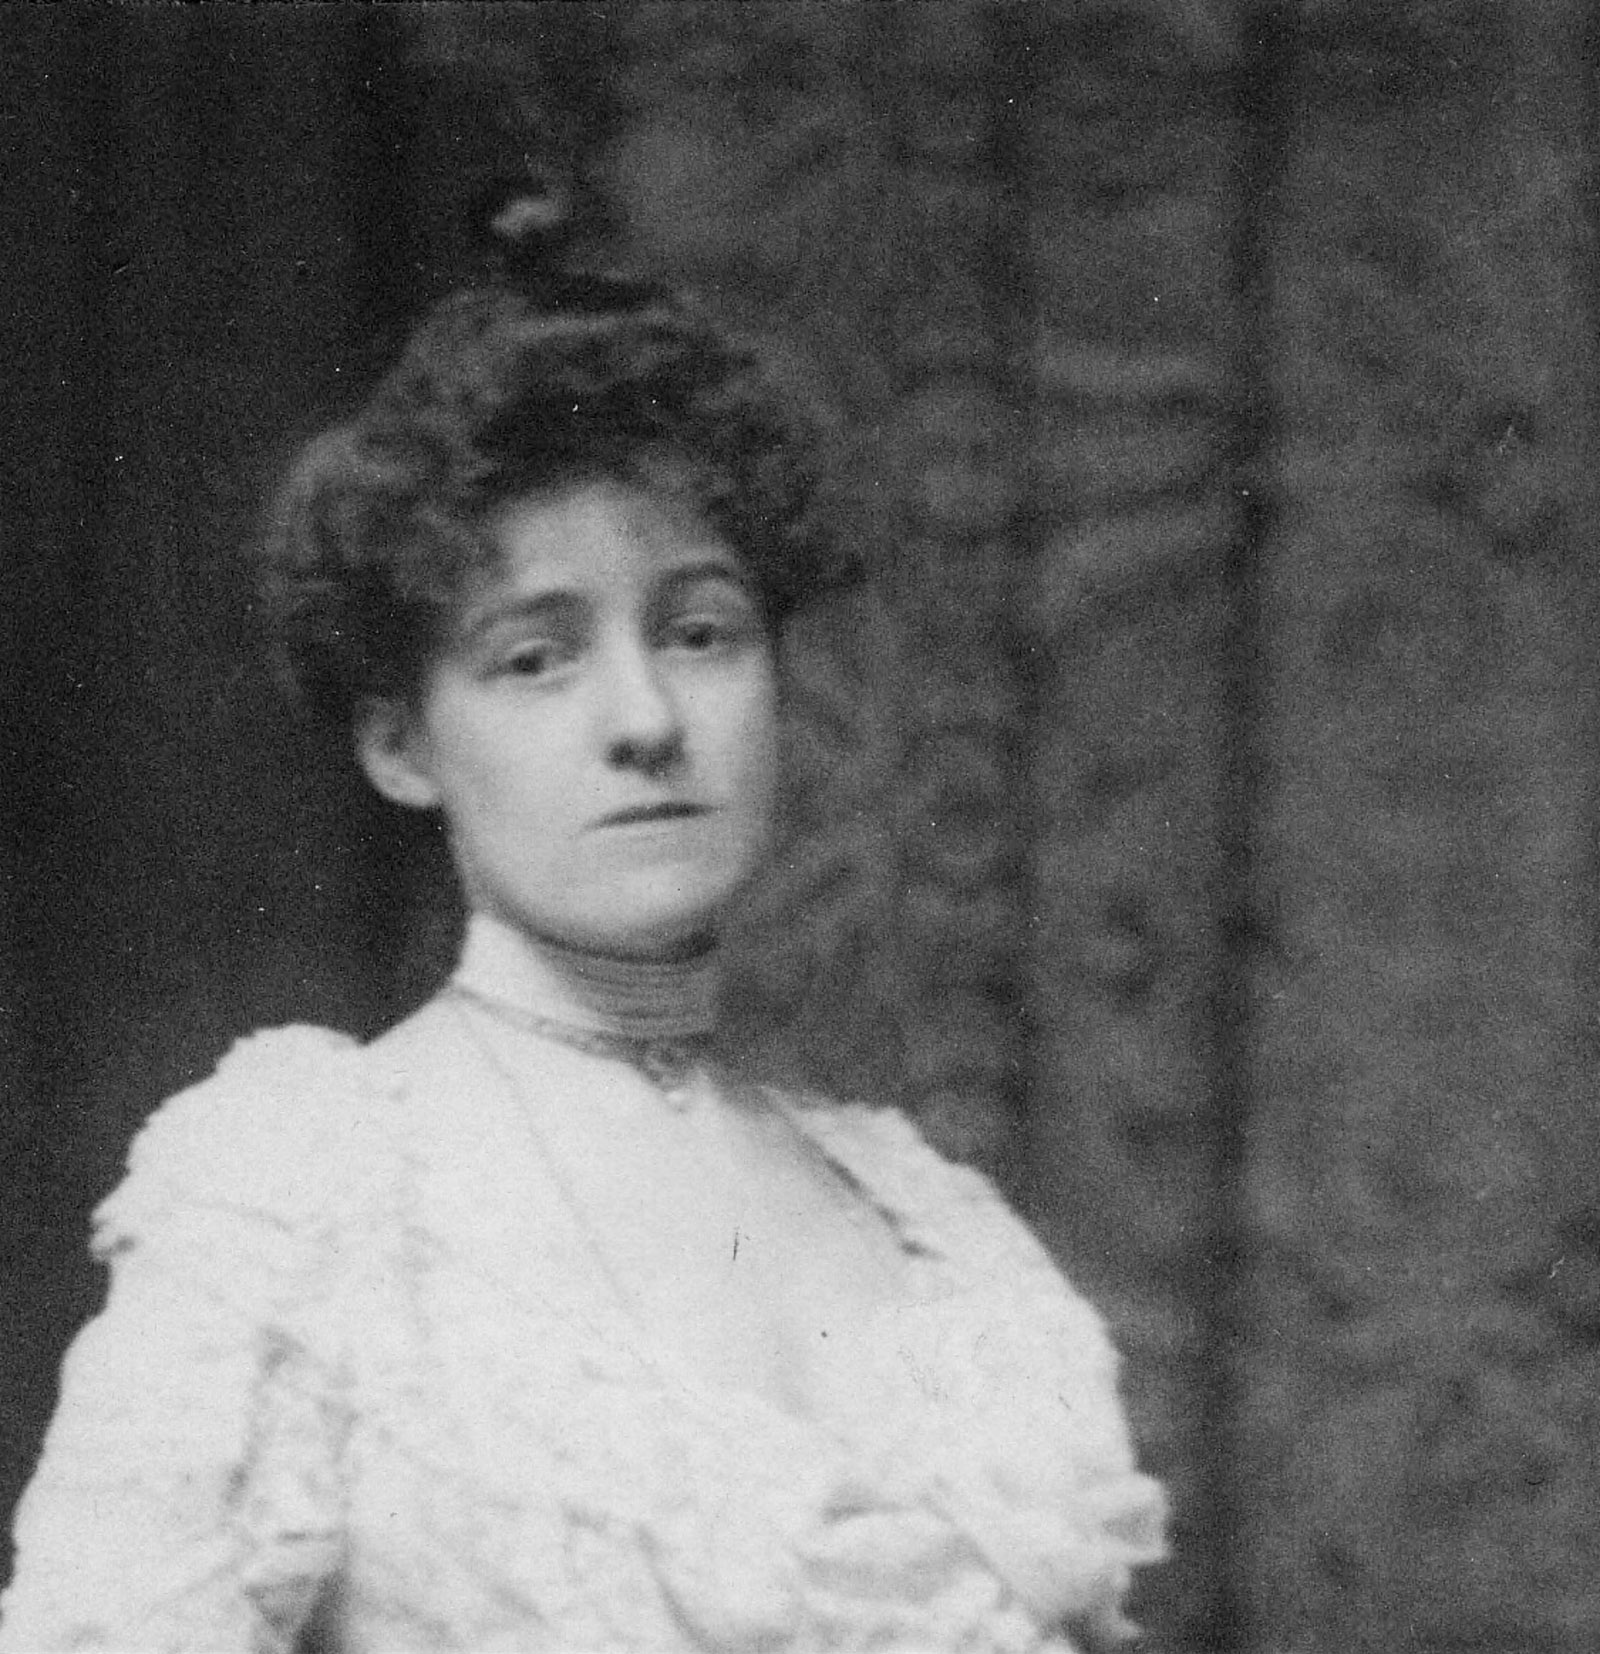 college essays on edith wharton Essay on edith wharton's ethan frome 1992 words | 8 pages indeed, the prologue shows the future frome in distress and oppression, further suggesting that.